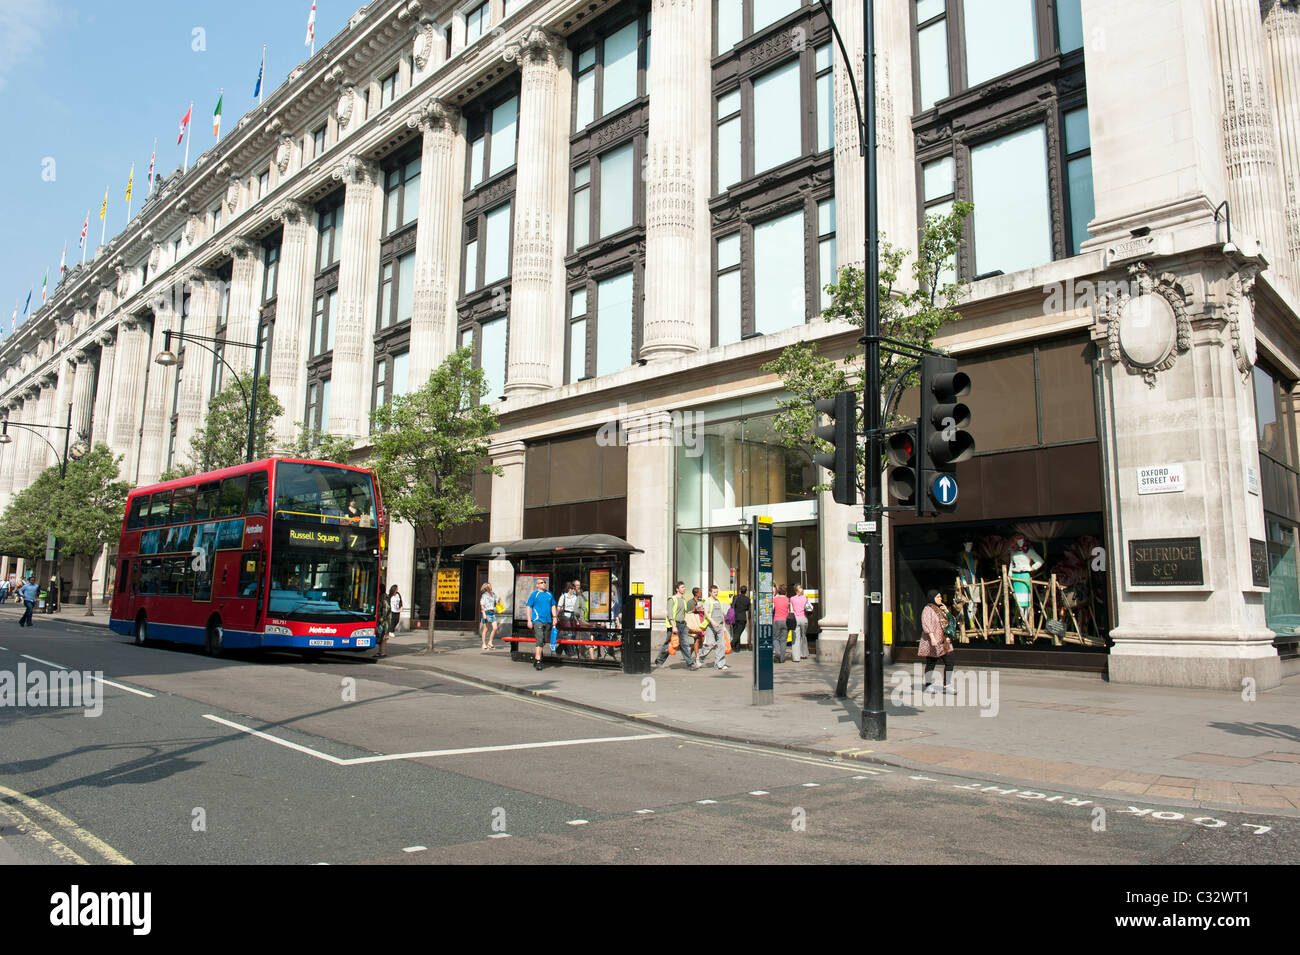 Red London bus on Oxford Street, outside the Selfridges store - Stock Image